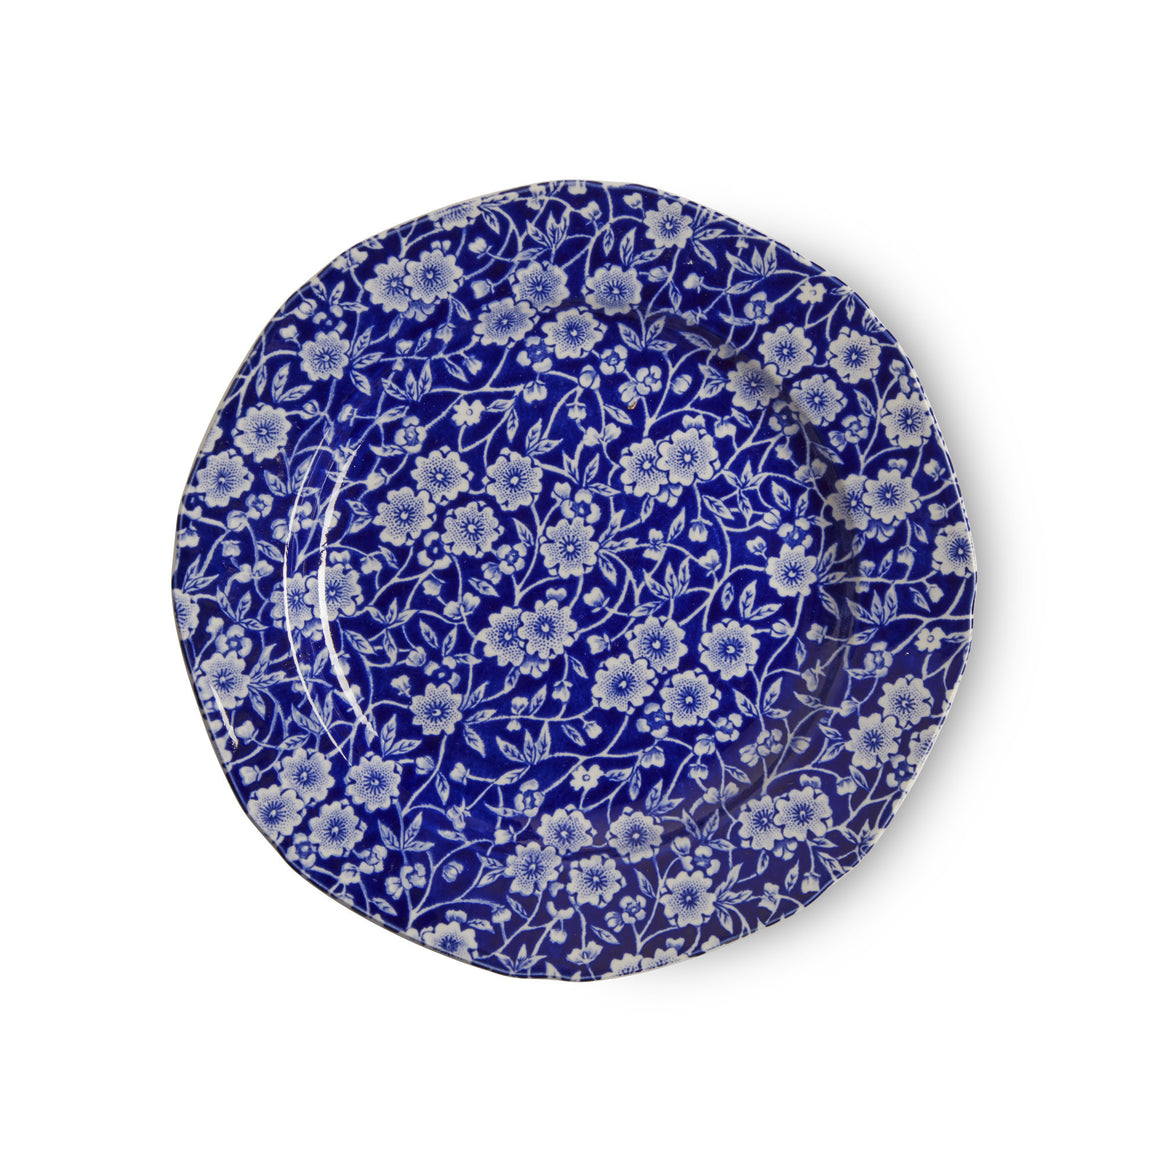 Burleigh Blue Calico Tea Plate 19cm